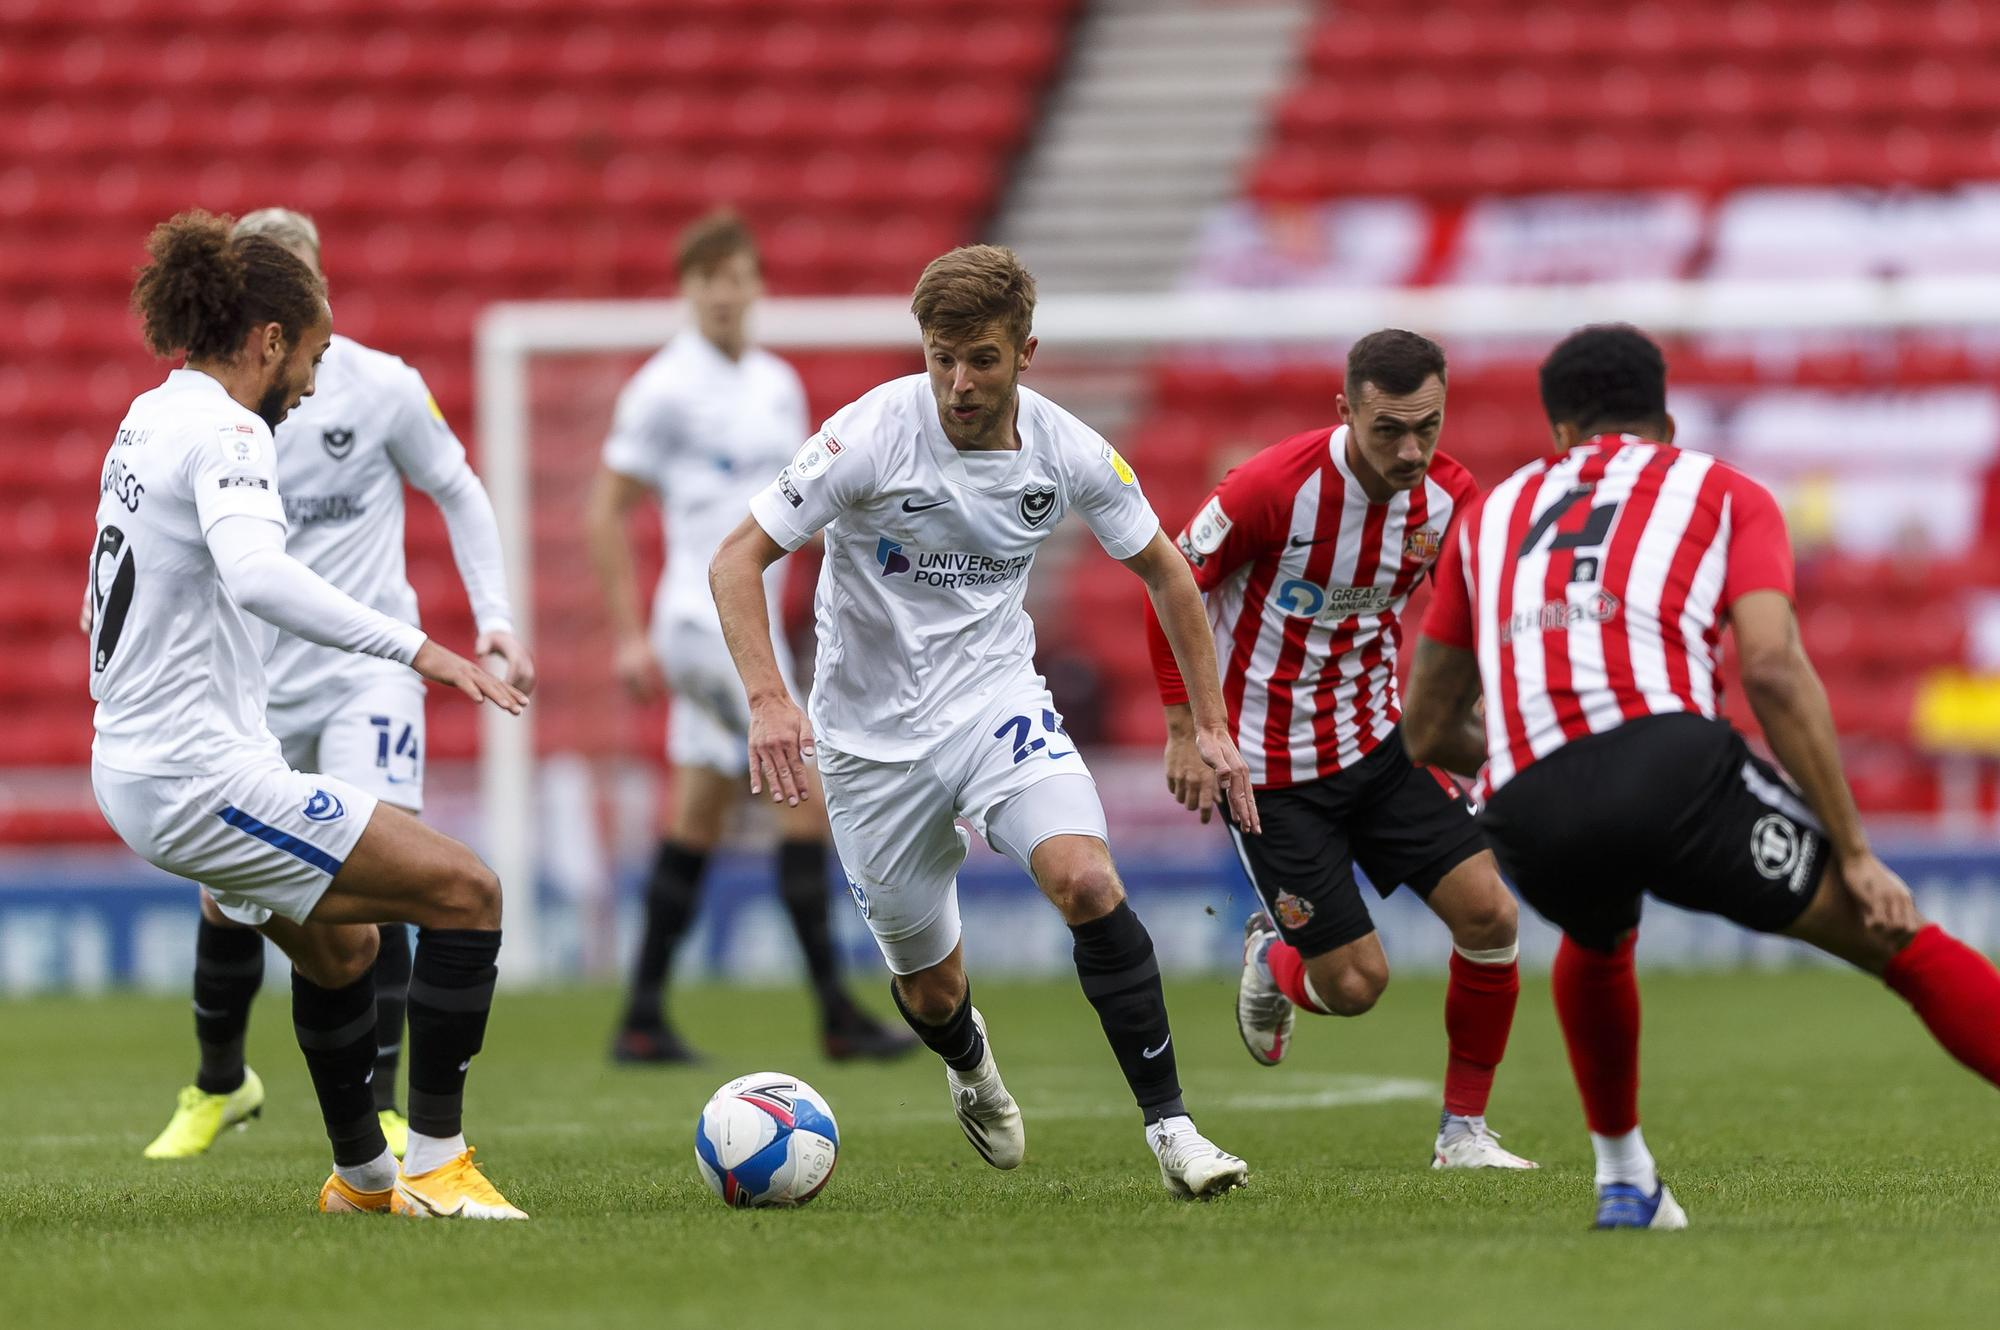 Portsmouth blow as Michael Jacobs to have scan on knee injury suffered in Sunderland win